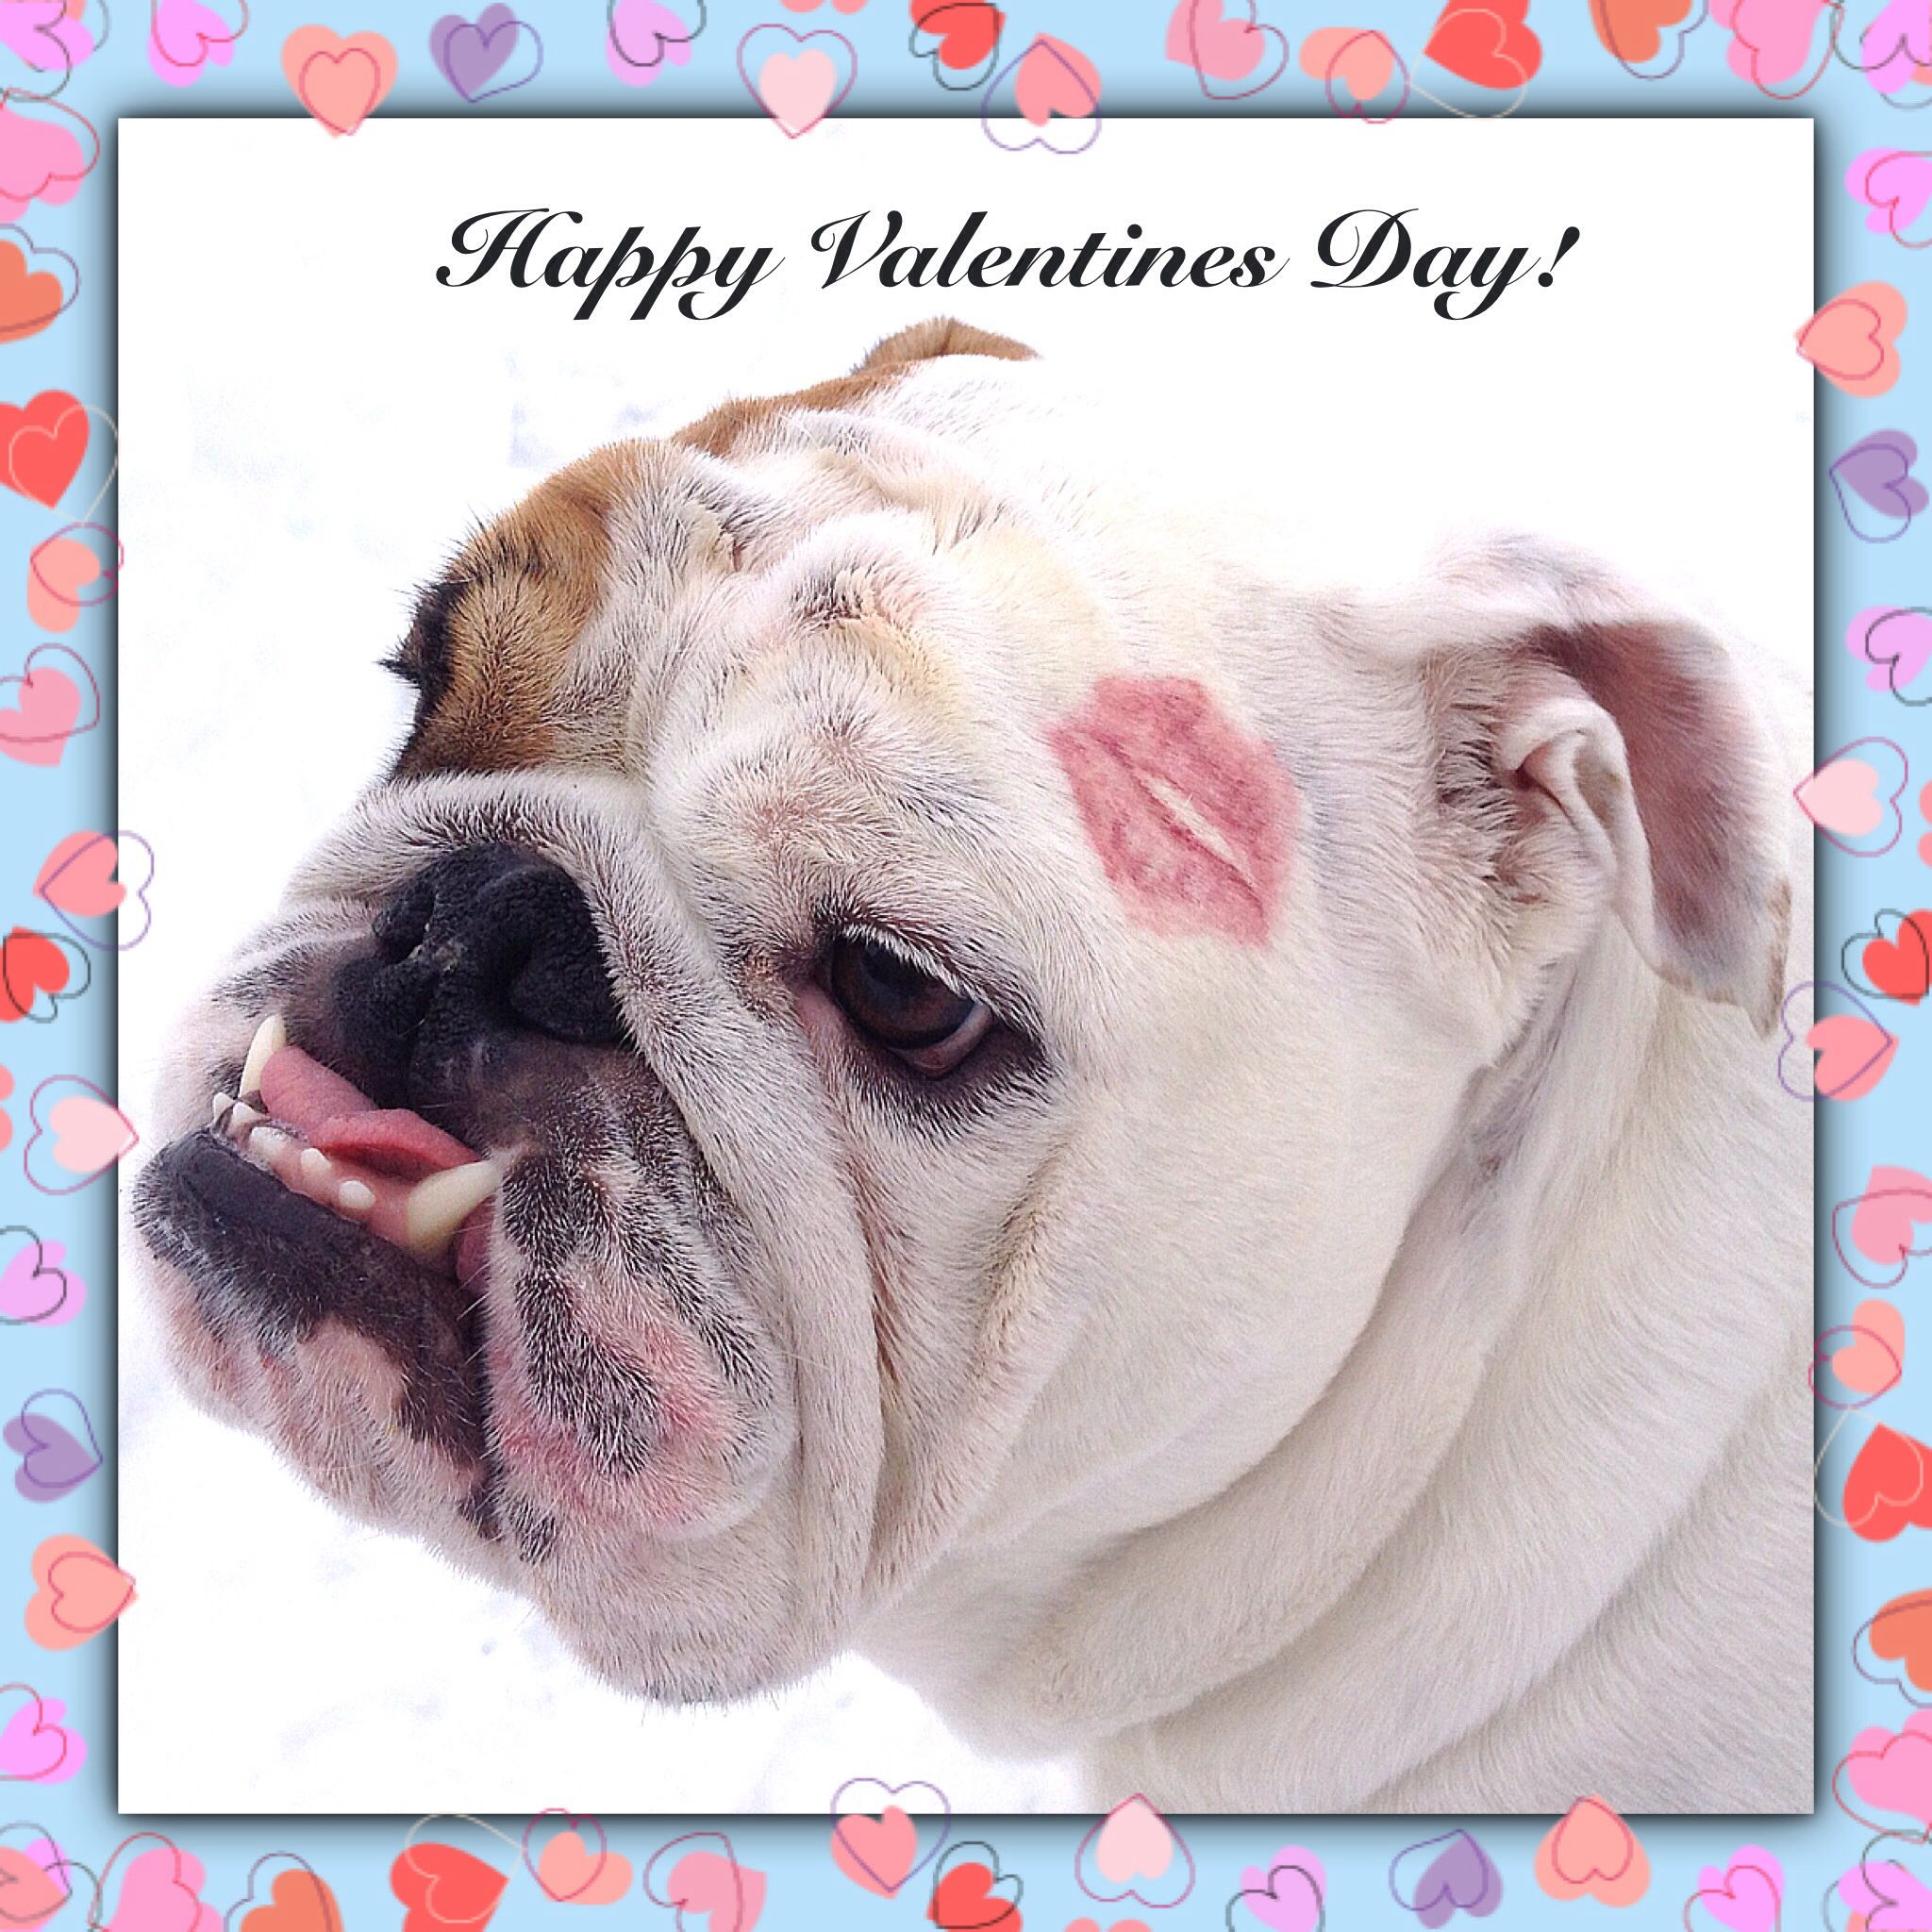 Sending Kisses And Happy Valentines Wishes To All My Bulldog